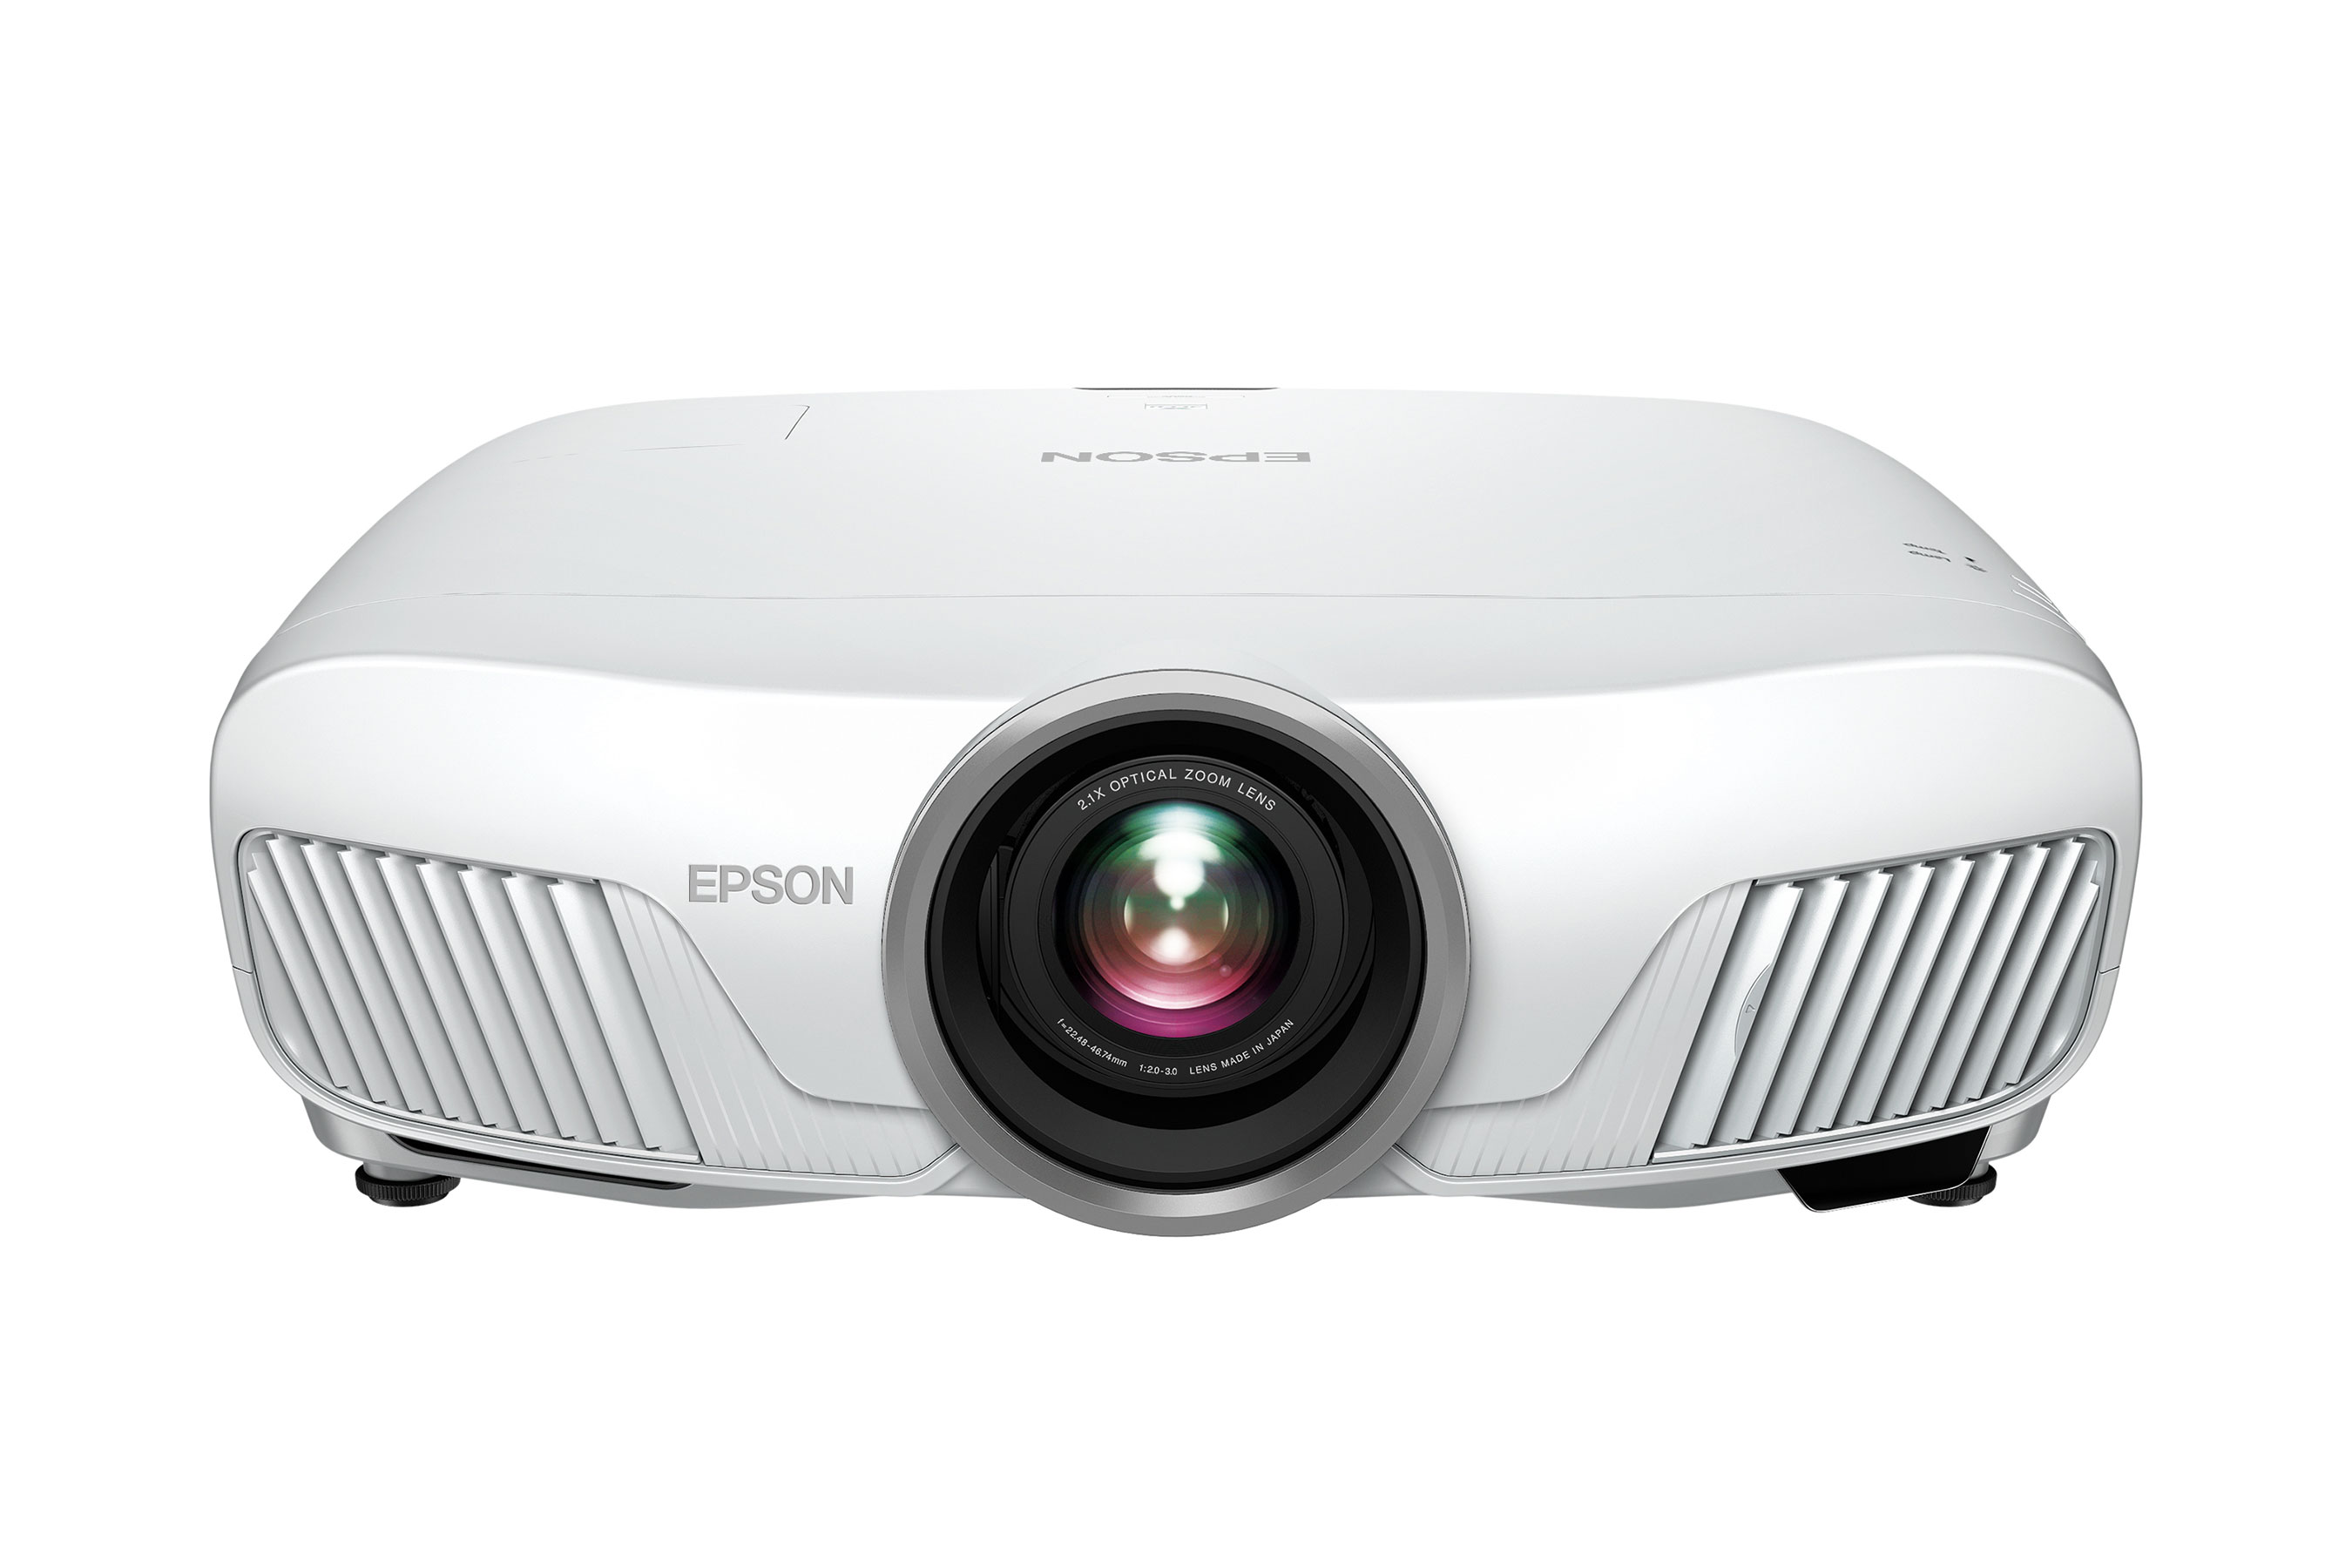 Bring the ultimate 4K experience to your home with the Home Cinema 4010 4K PRO-UHD projector with advanced 3-Chip design and HDR.